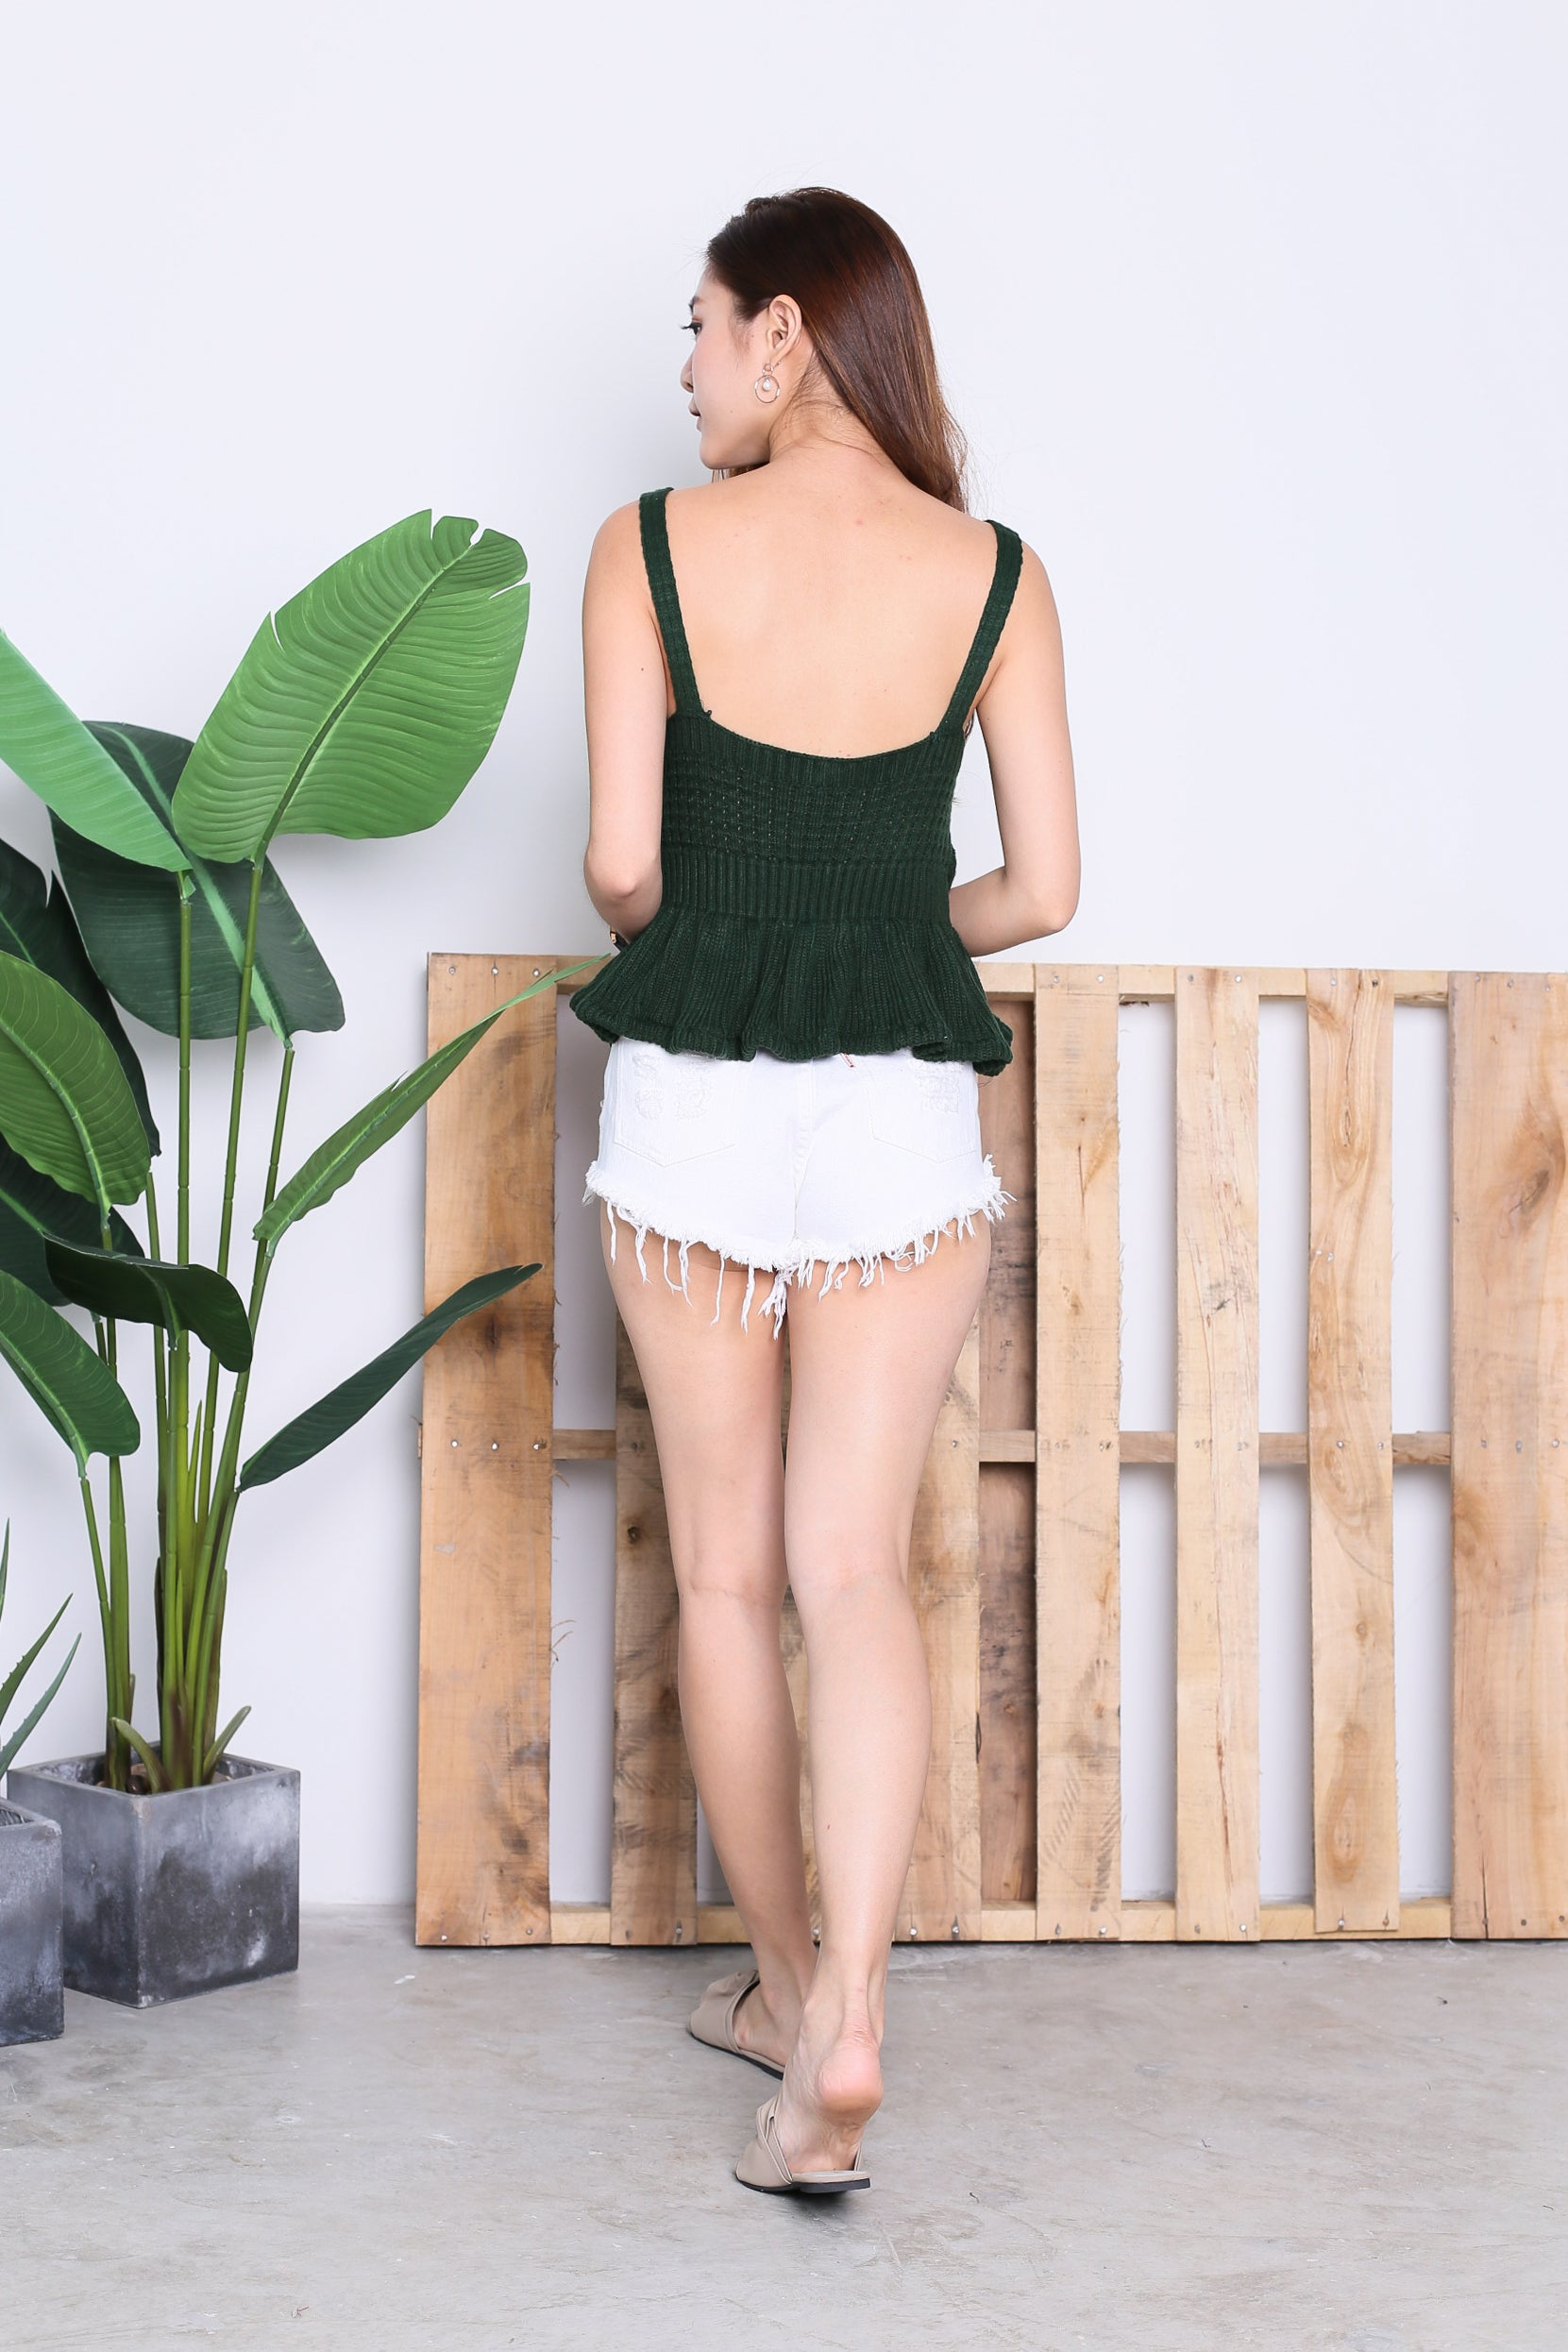 GLACIER KNIT BABYDOLL TOP IN FOREST